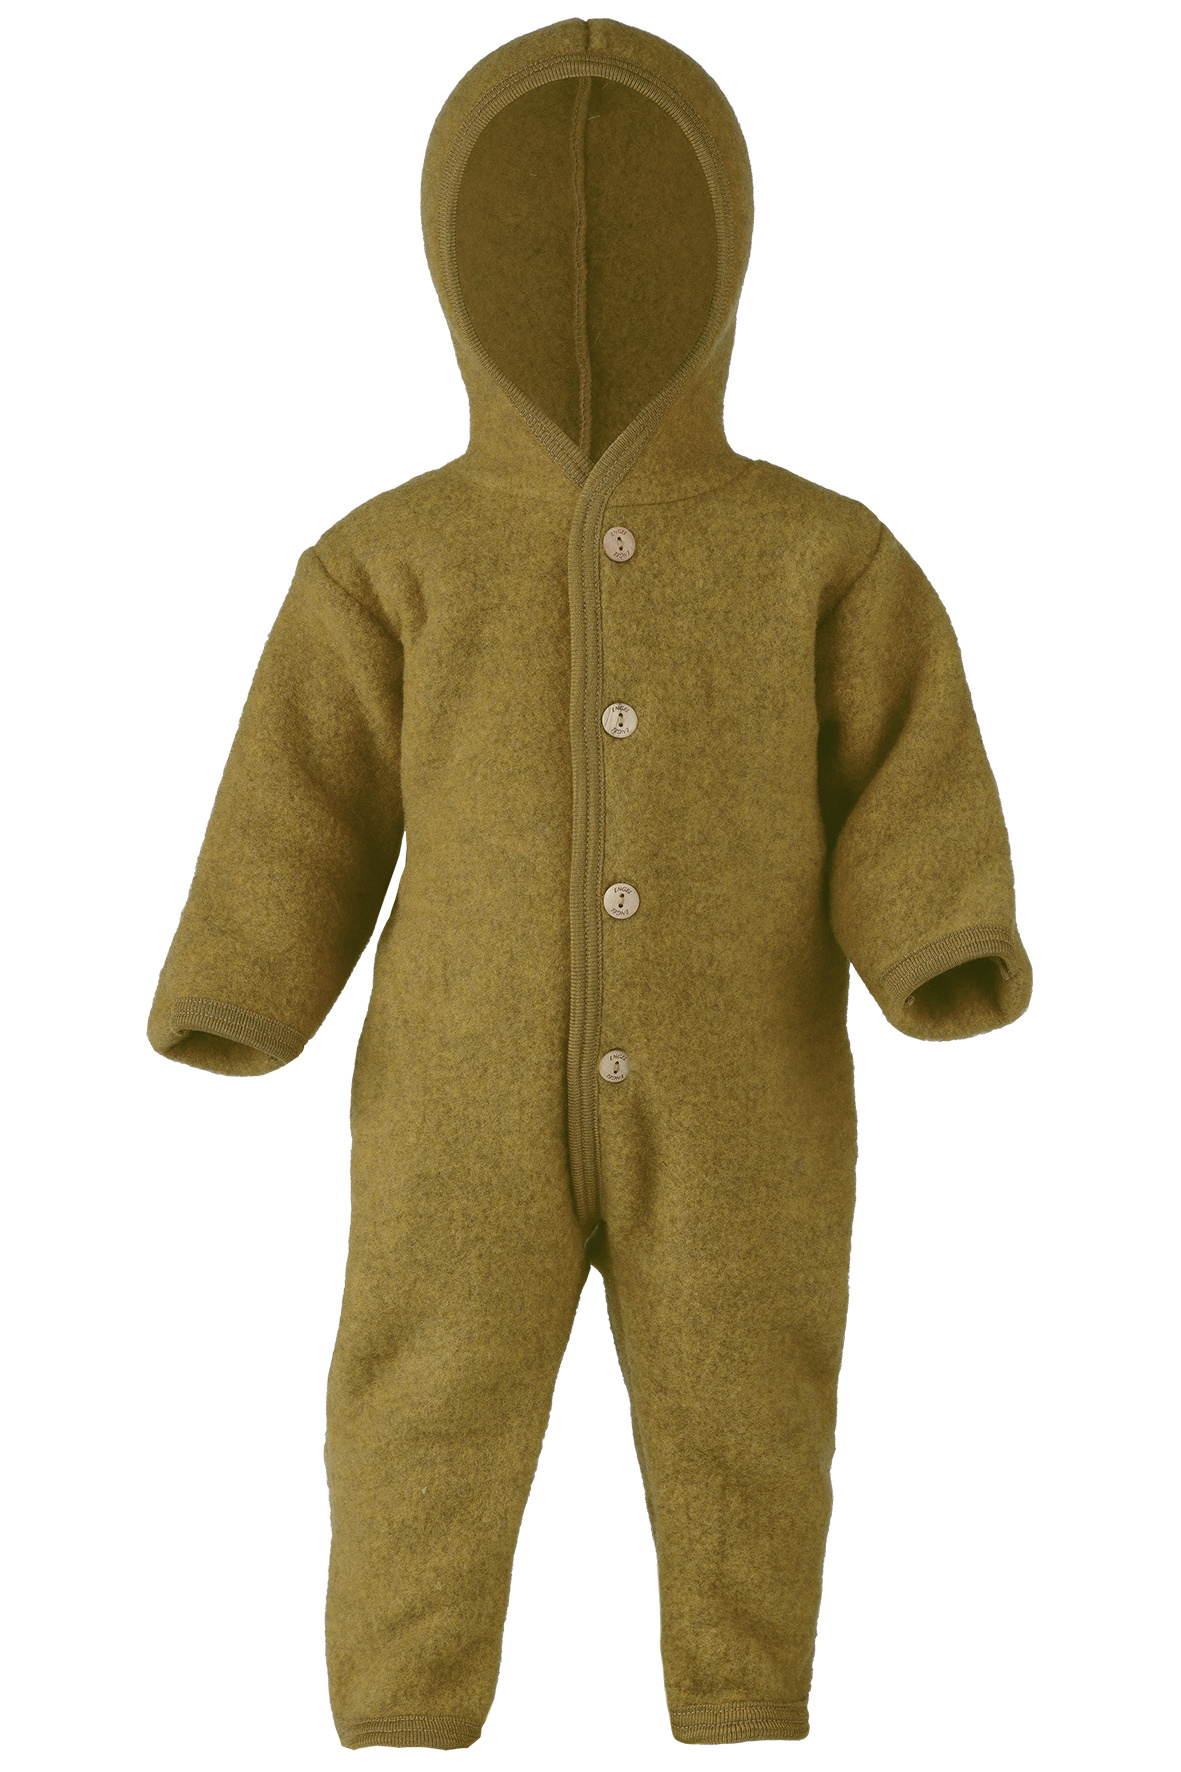 Hooded overall - Saffron-1